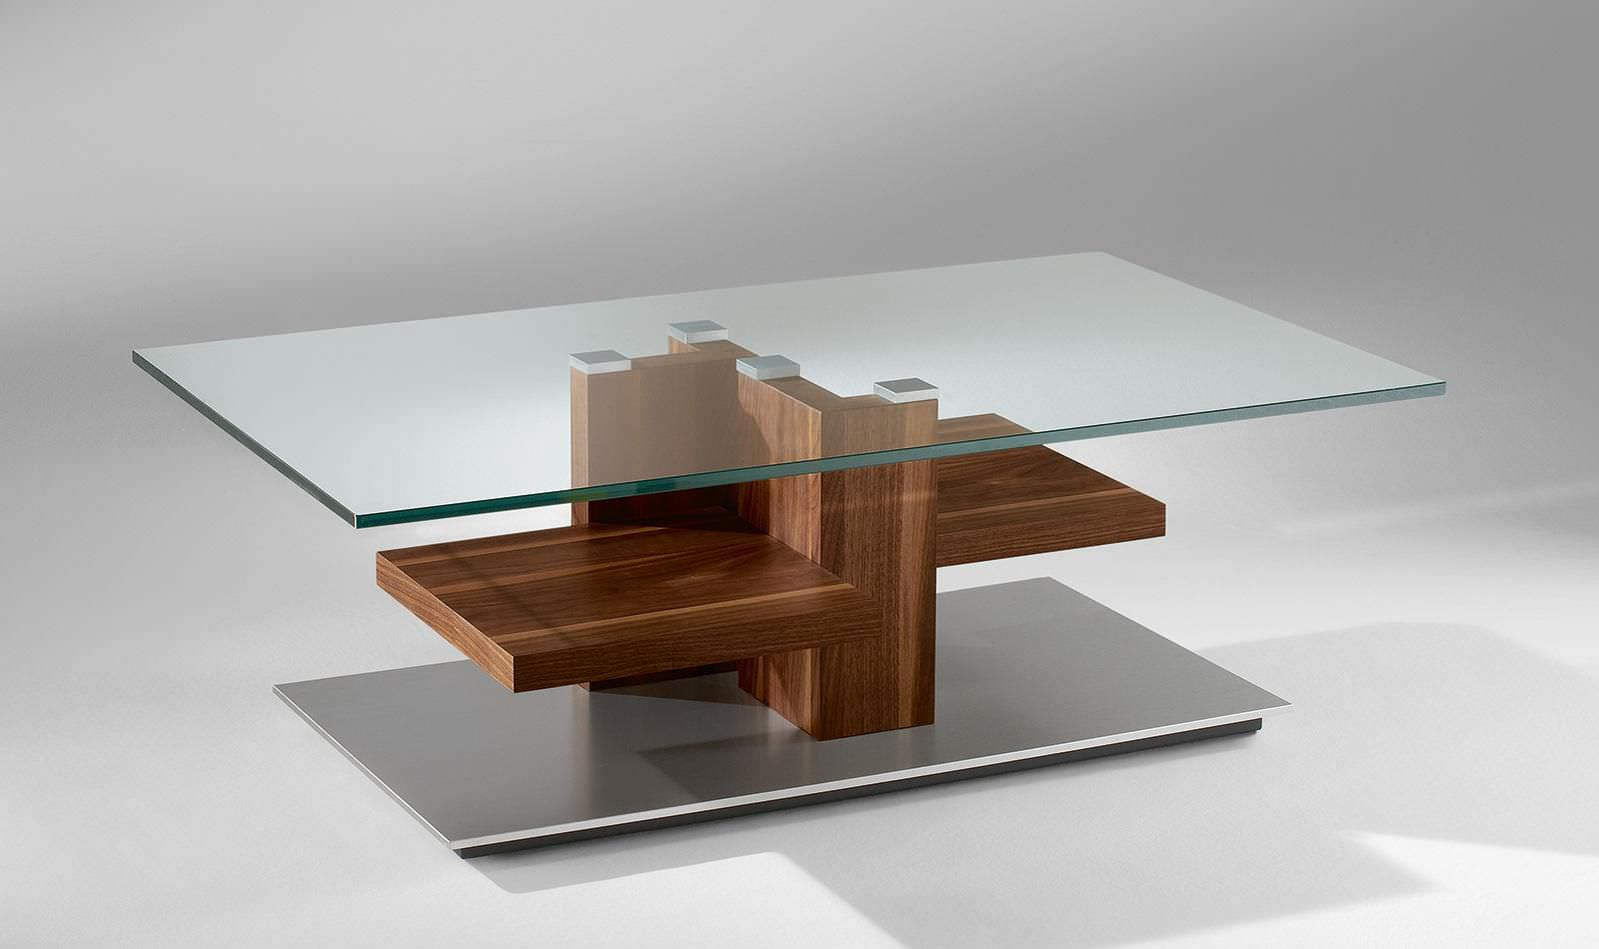 Simple Coffee Table Wood Glass Beautiful Interior Furniture Design Simple Woodworking Projects For Cub Scouts (View 2 of 10)